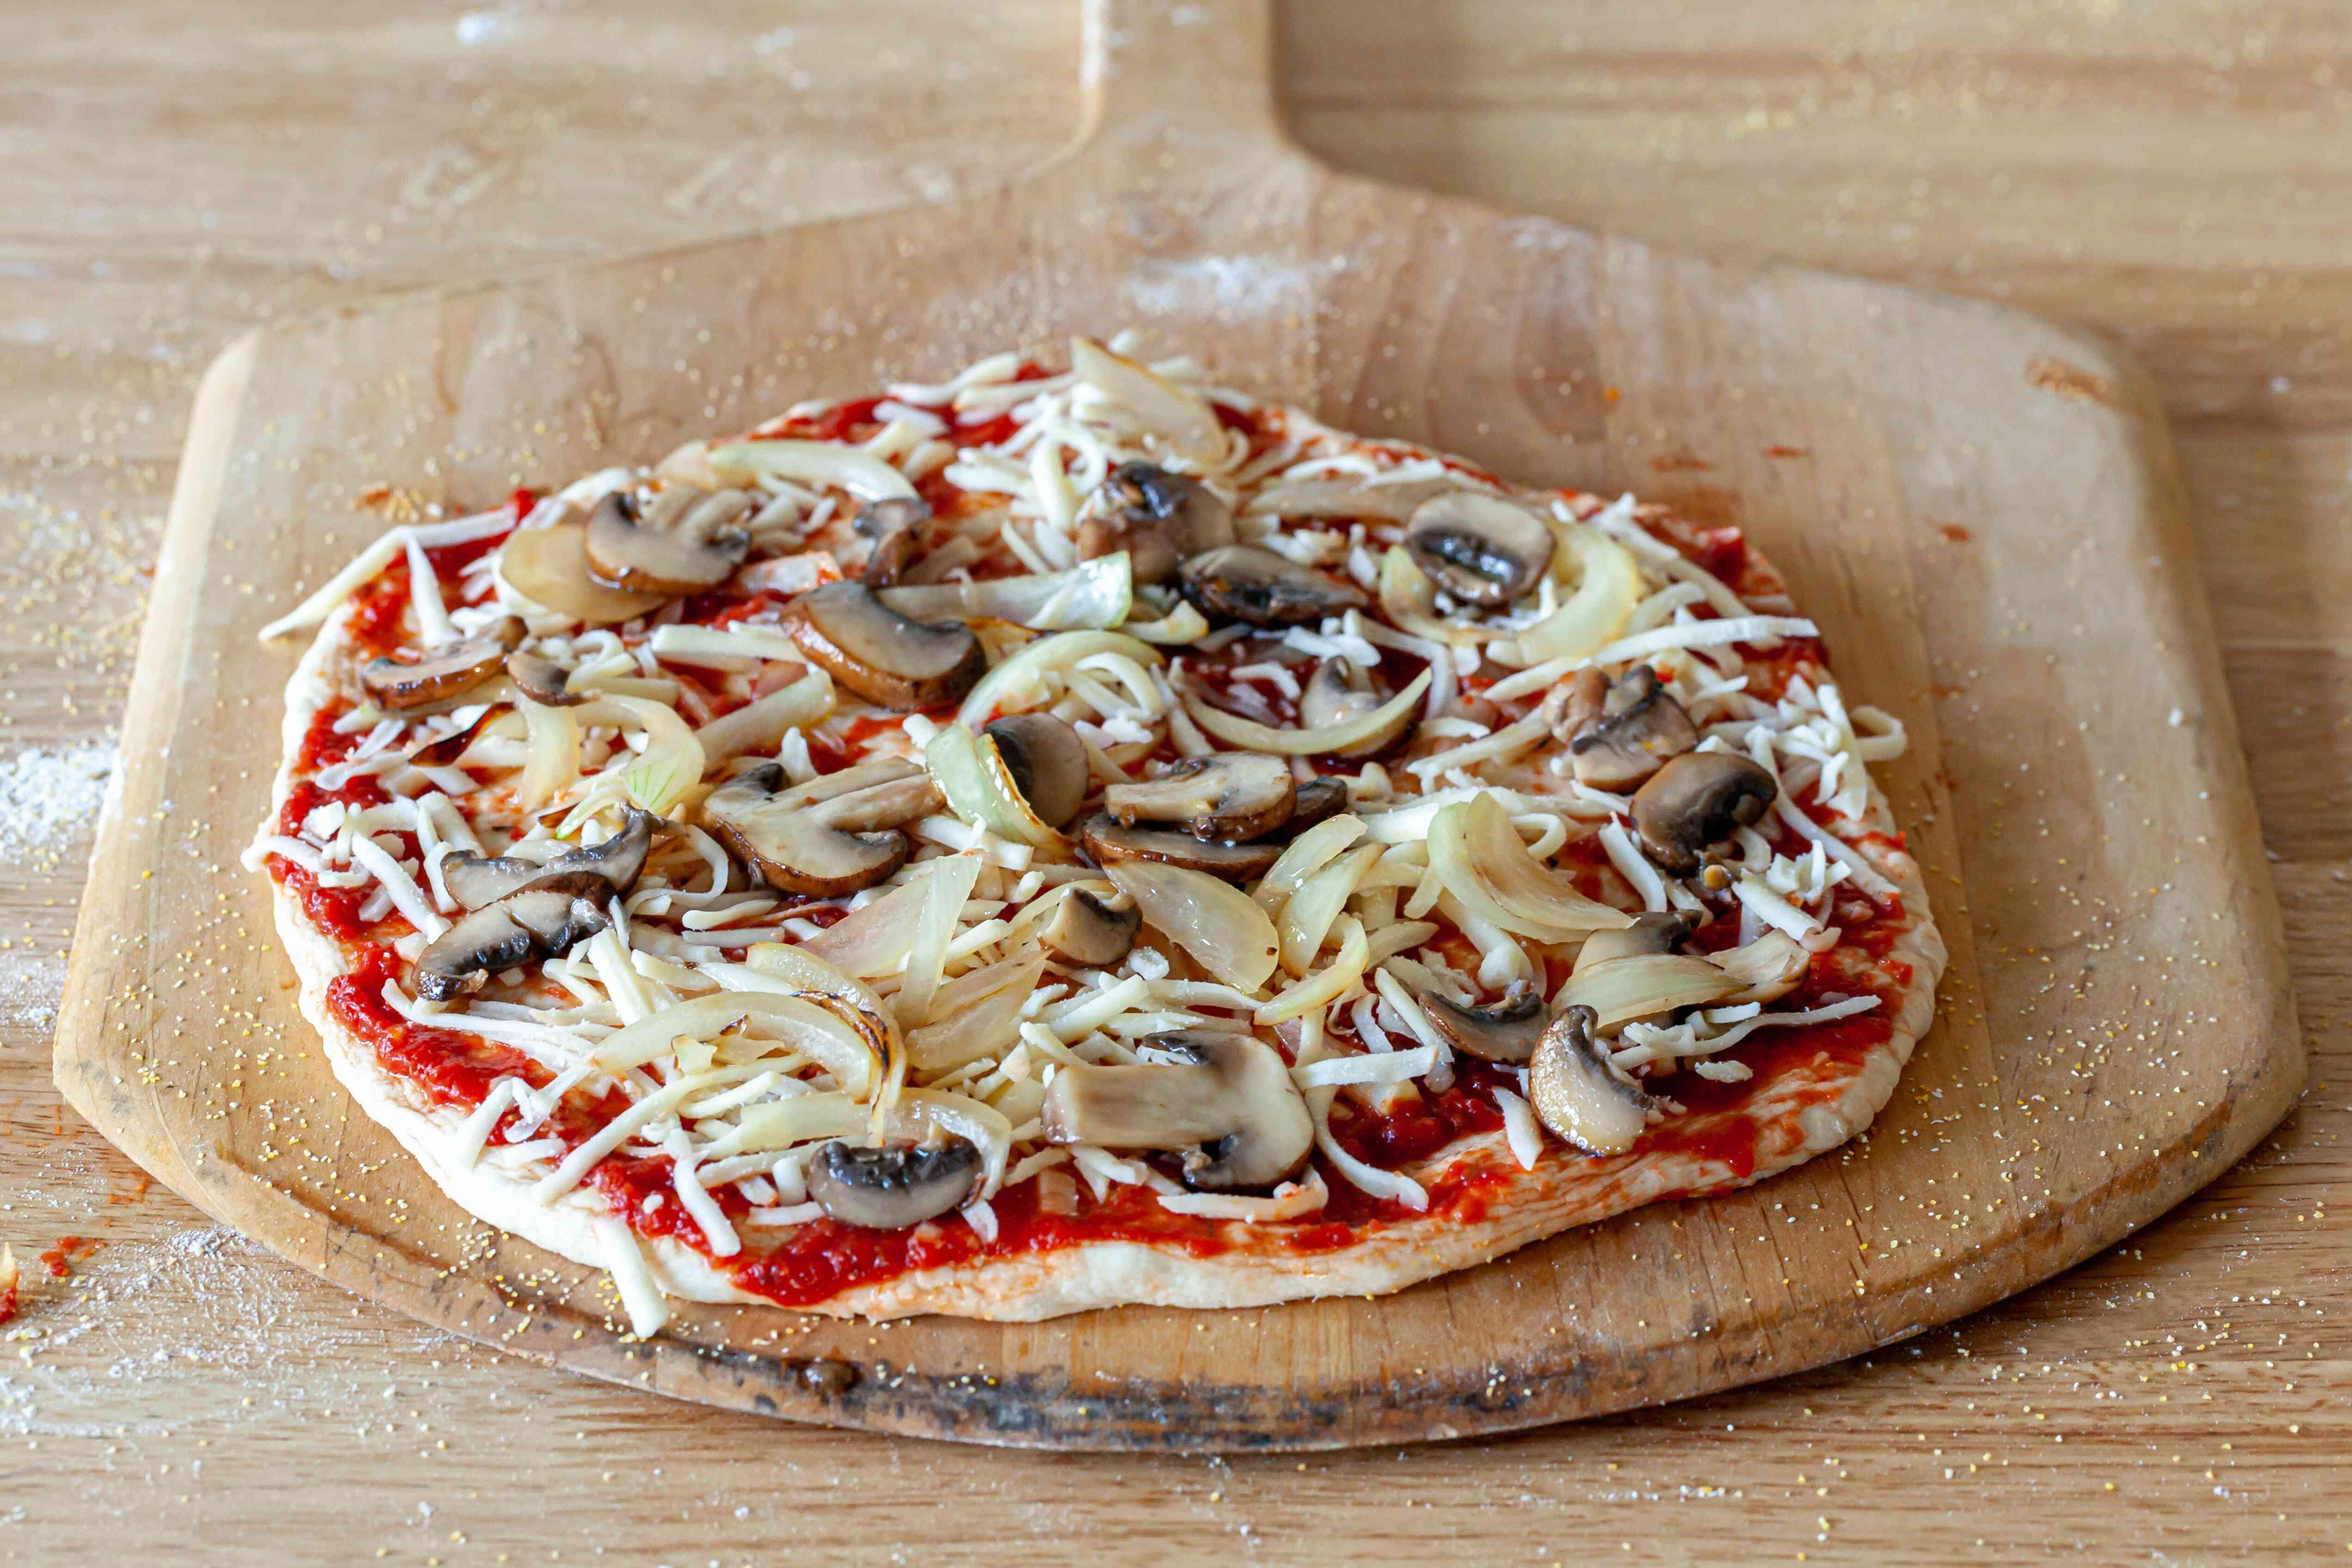 Pizza ingredients spread on pizza dough.